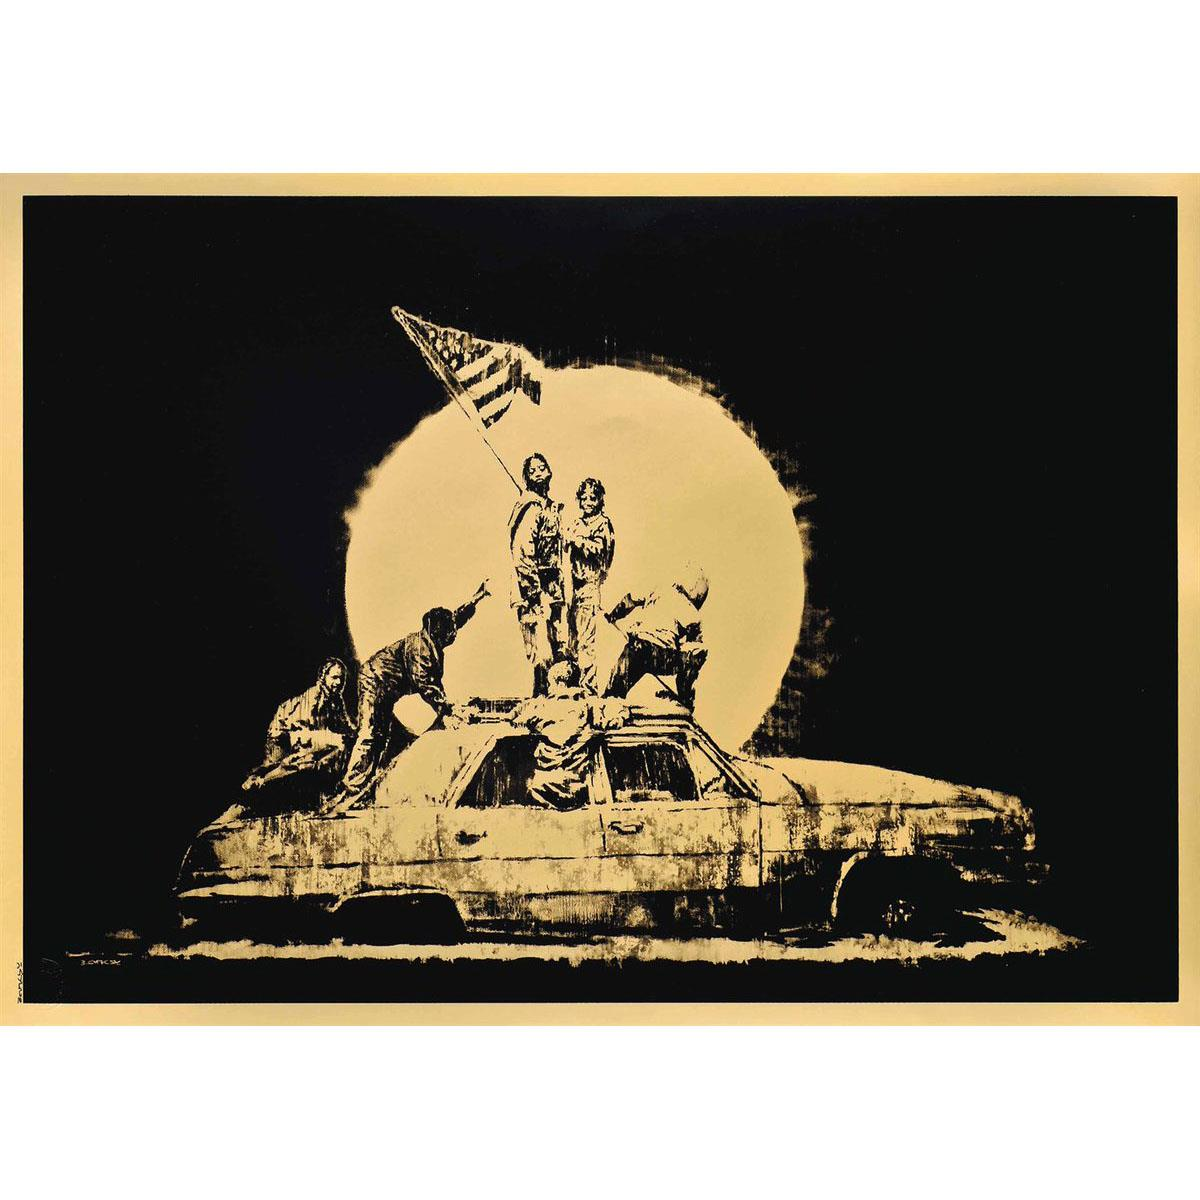 Flag (Gold) by Banksy